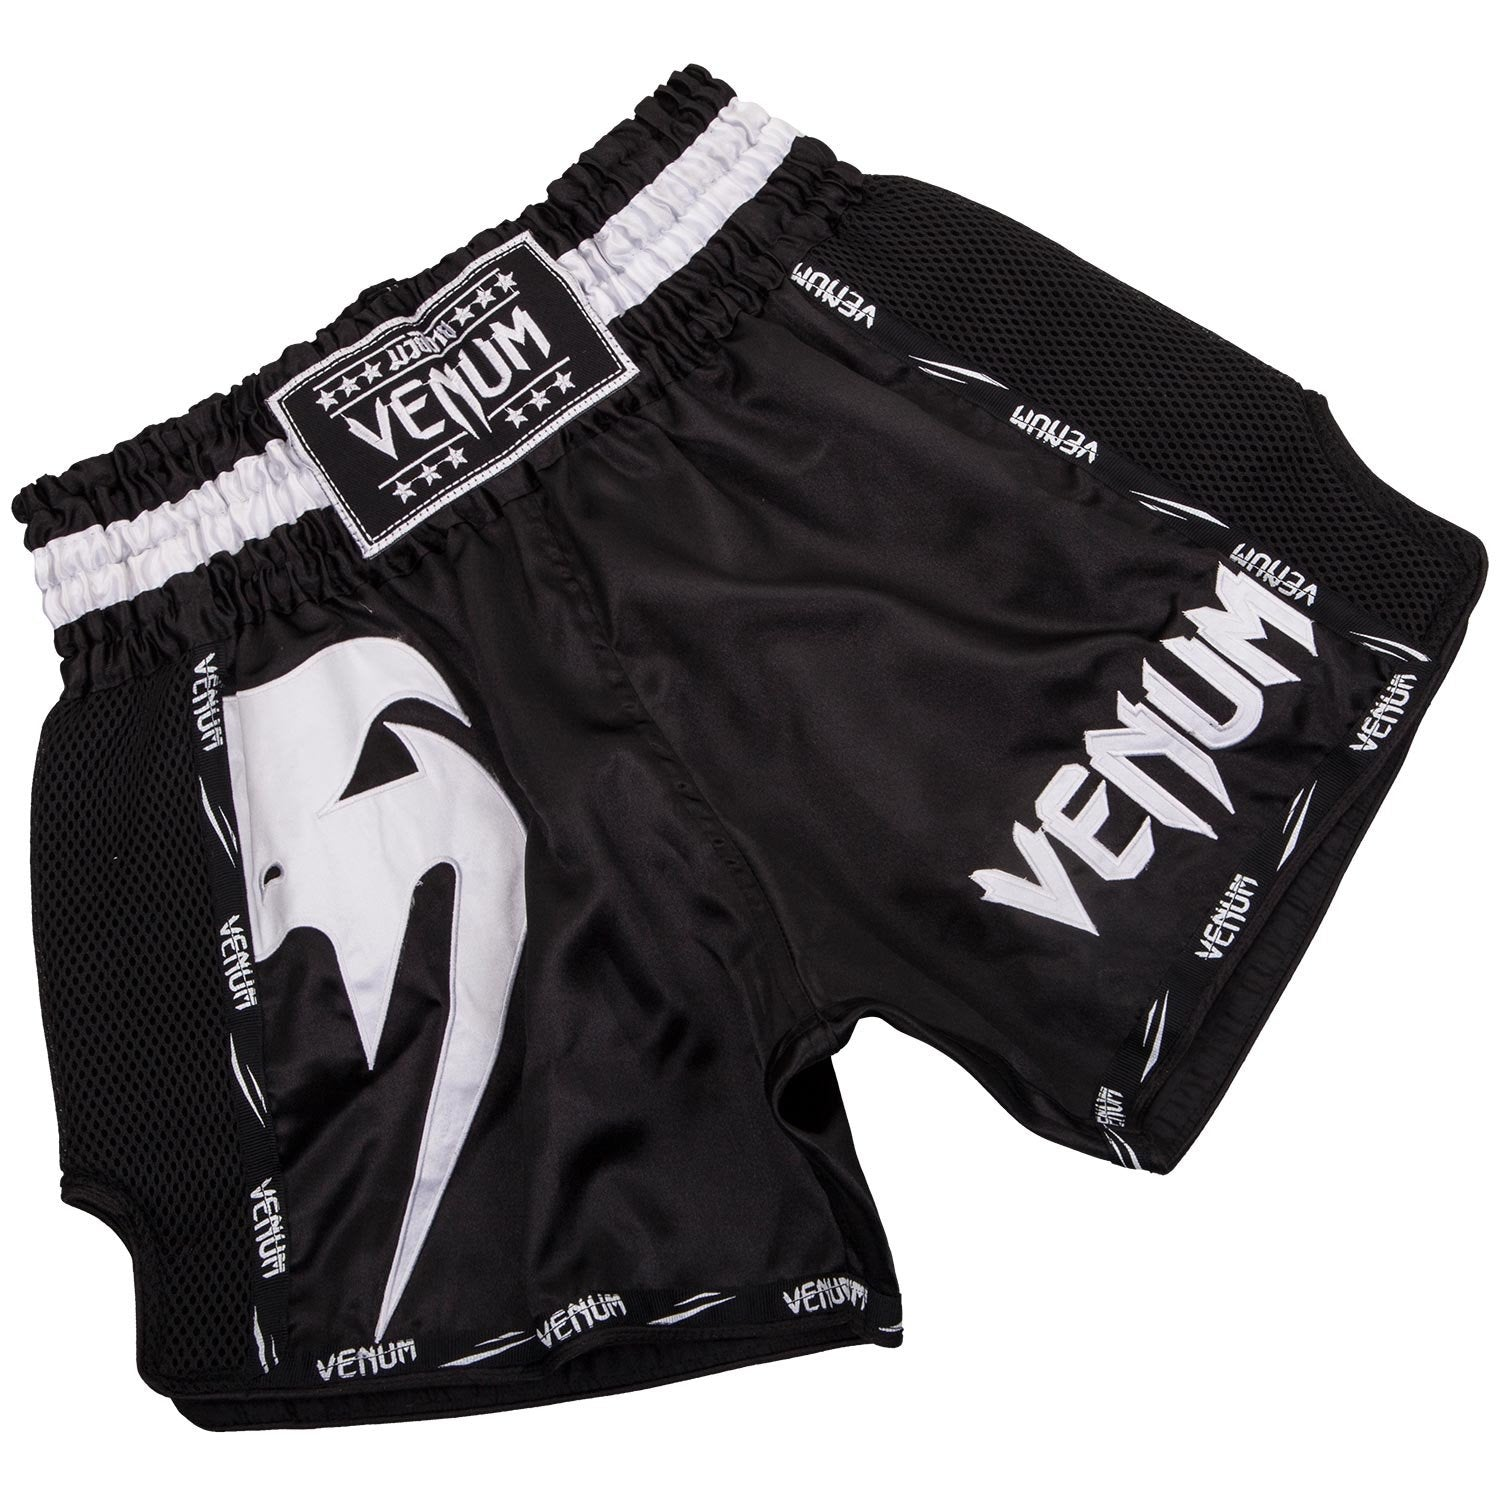 Venum Giant Muay Thai Short Black/White - The Fight Factory